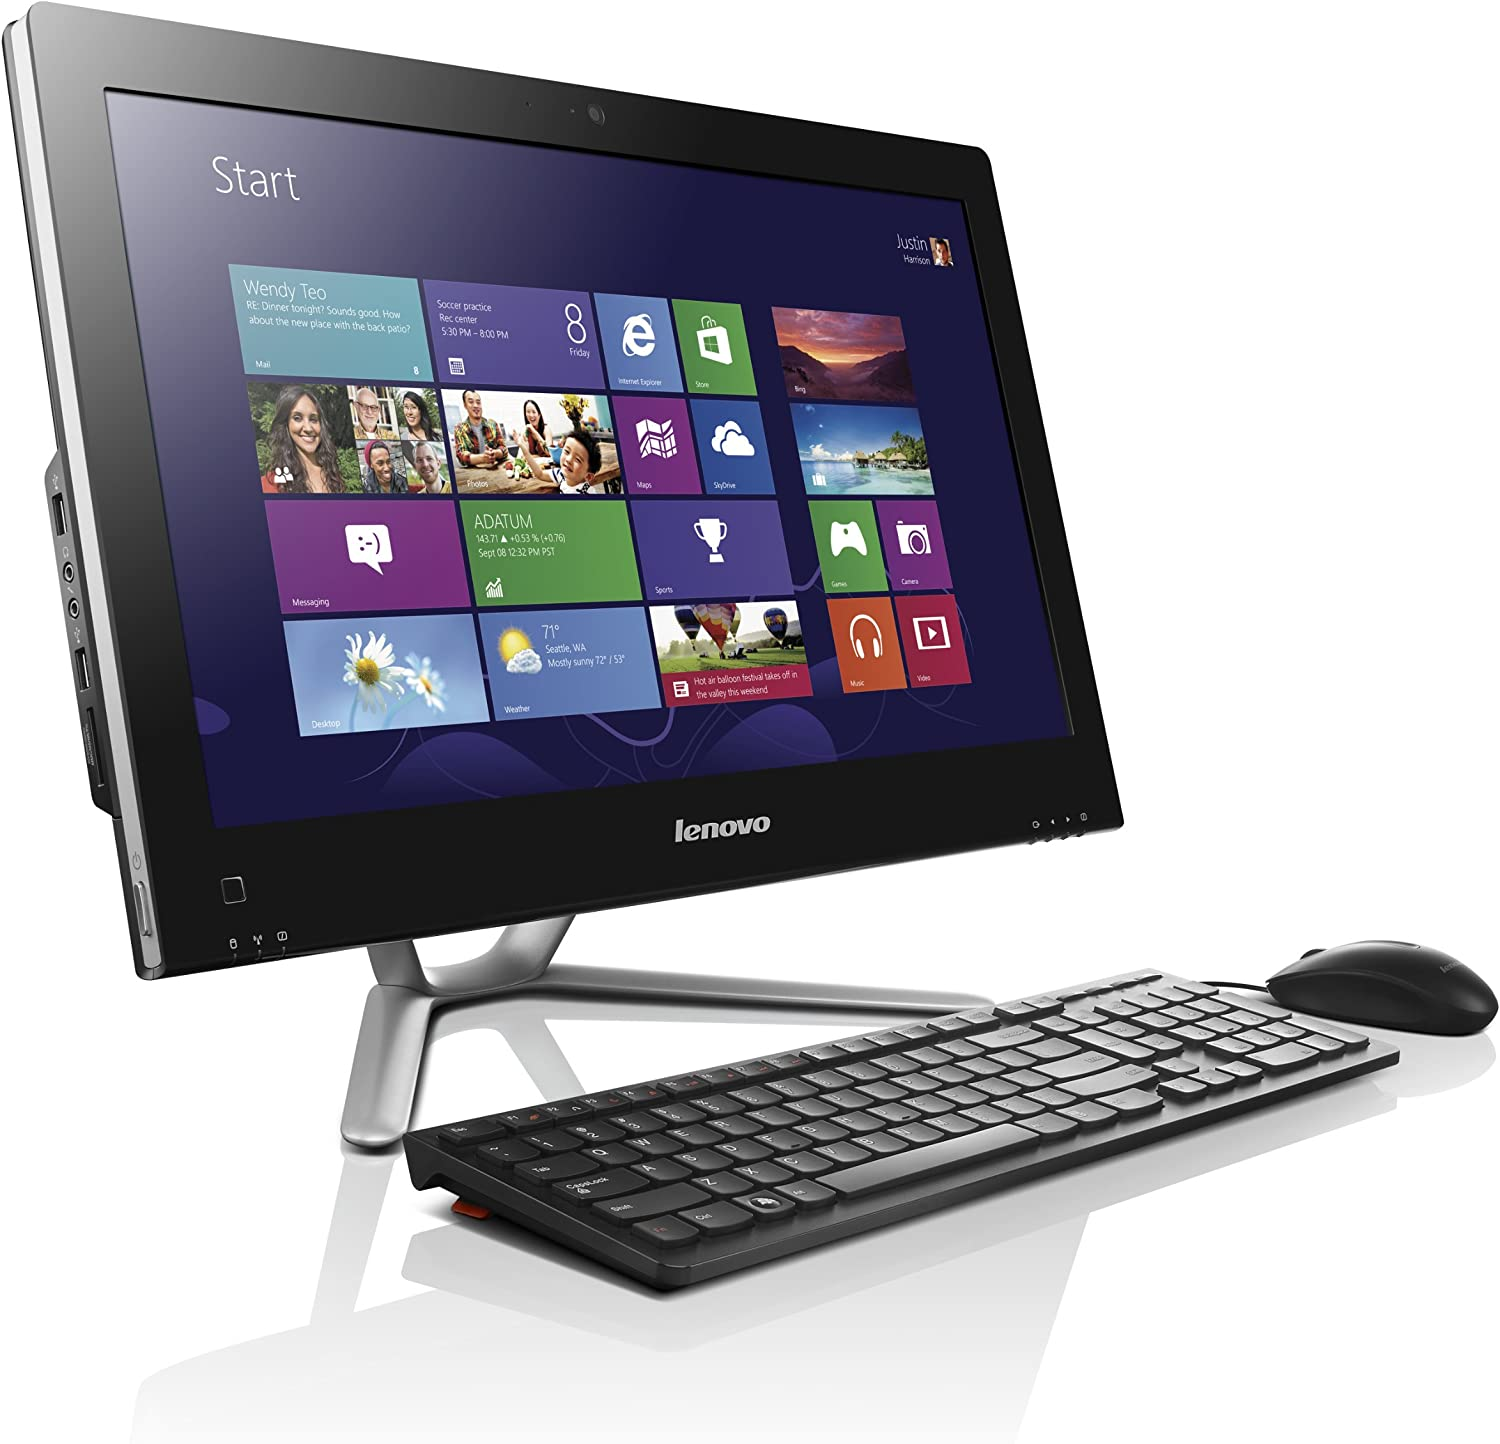 Lenovo IdeaCentre C355 57318980 20-Inch All-in-One Desktop (Black) (Discontinued by Manufacturer)